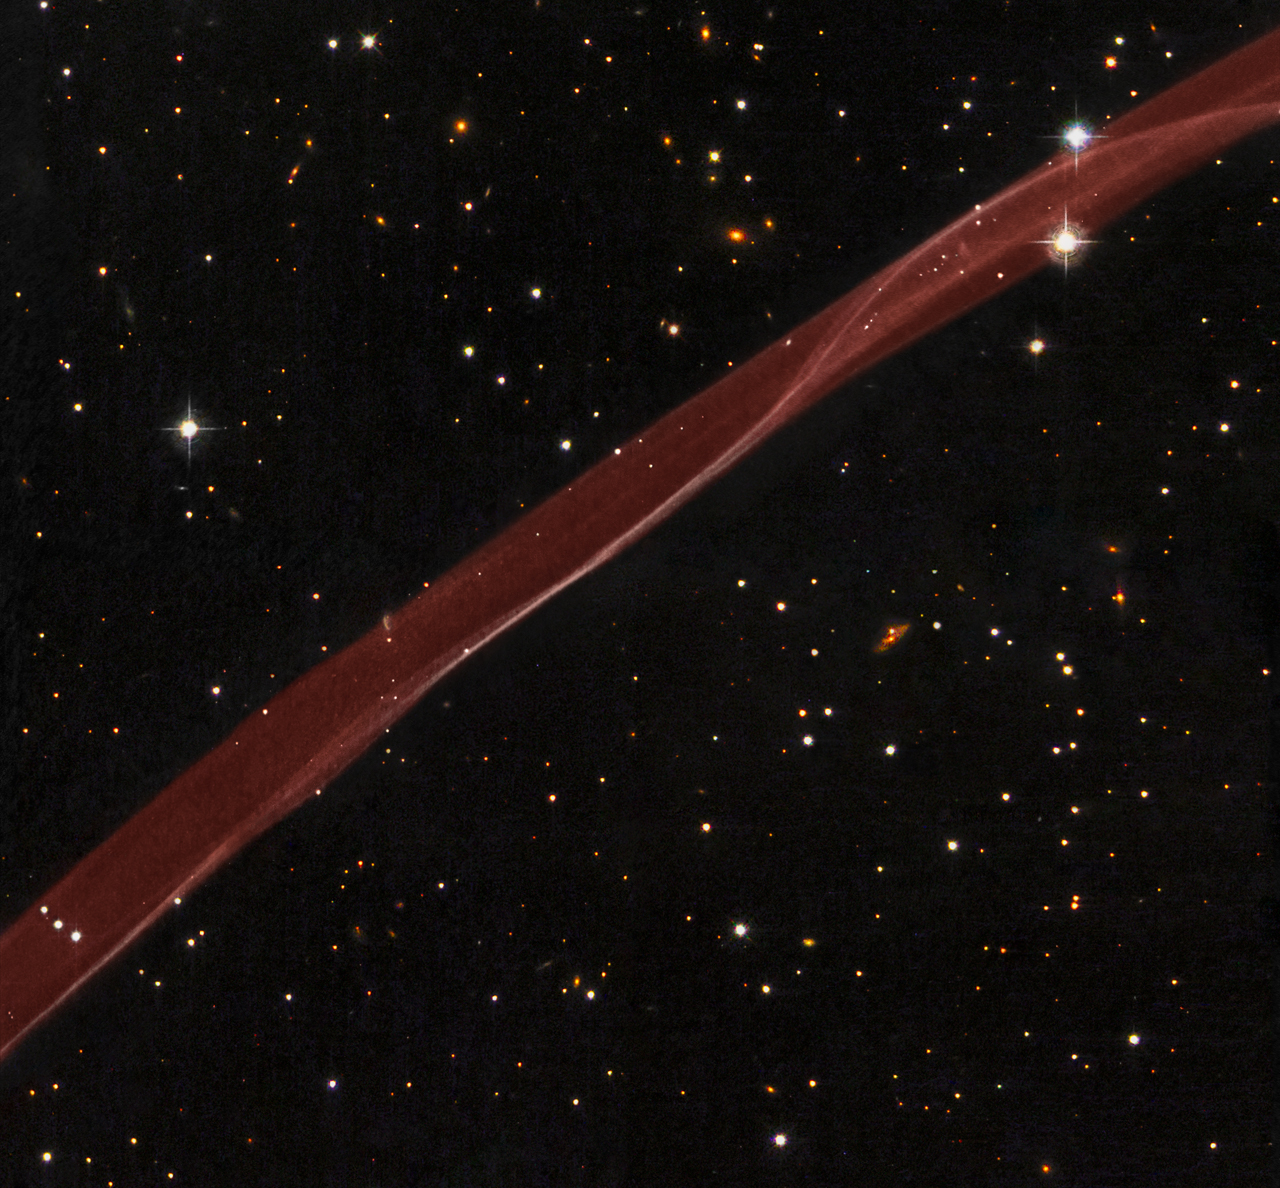 Apod 2008 September 15 Sn 1006 A Supernova Ribbon From